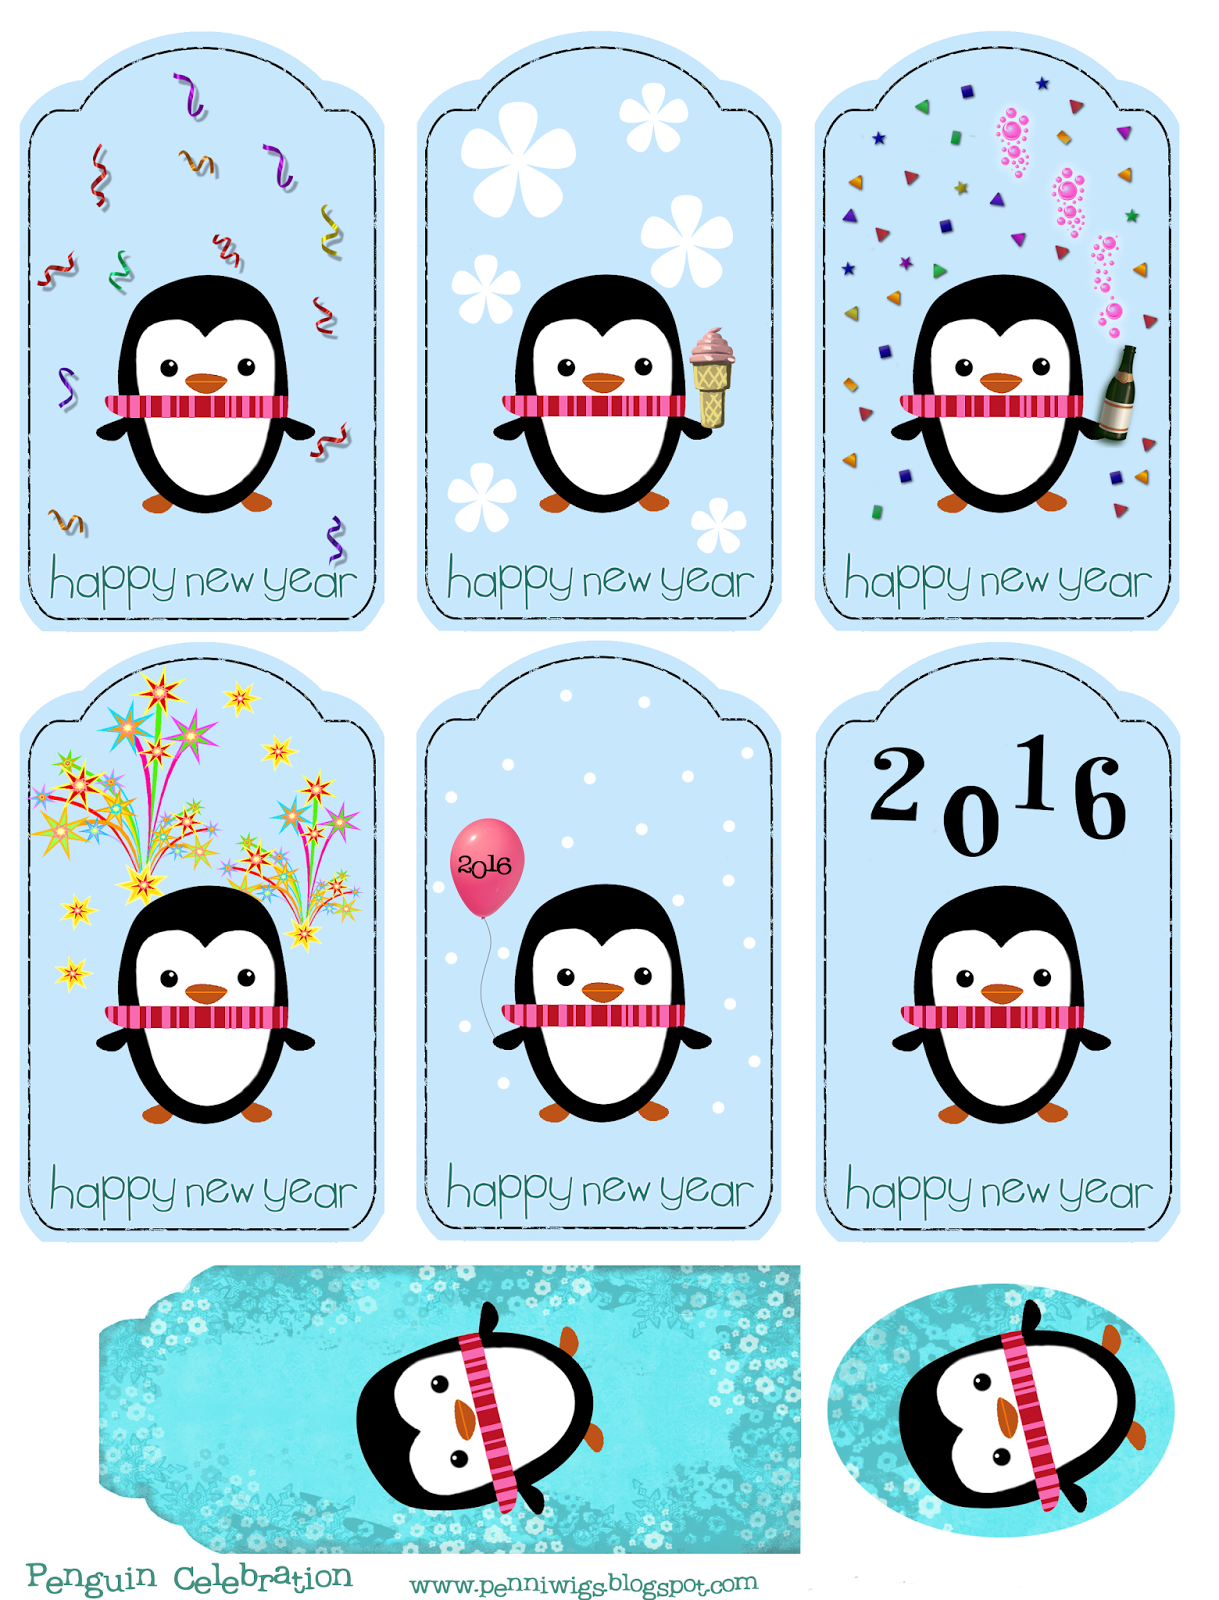 Penniwigs Free Graphics Printables Paper Fun Lore And More A Sheet Of New Year S Tags